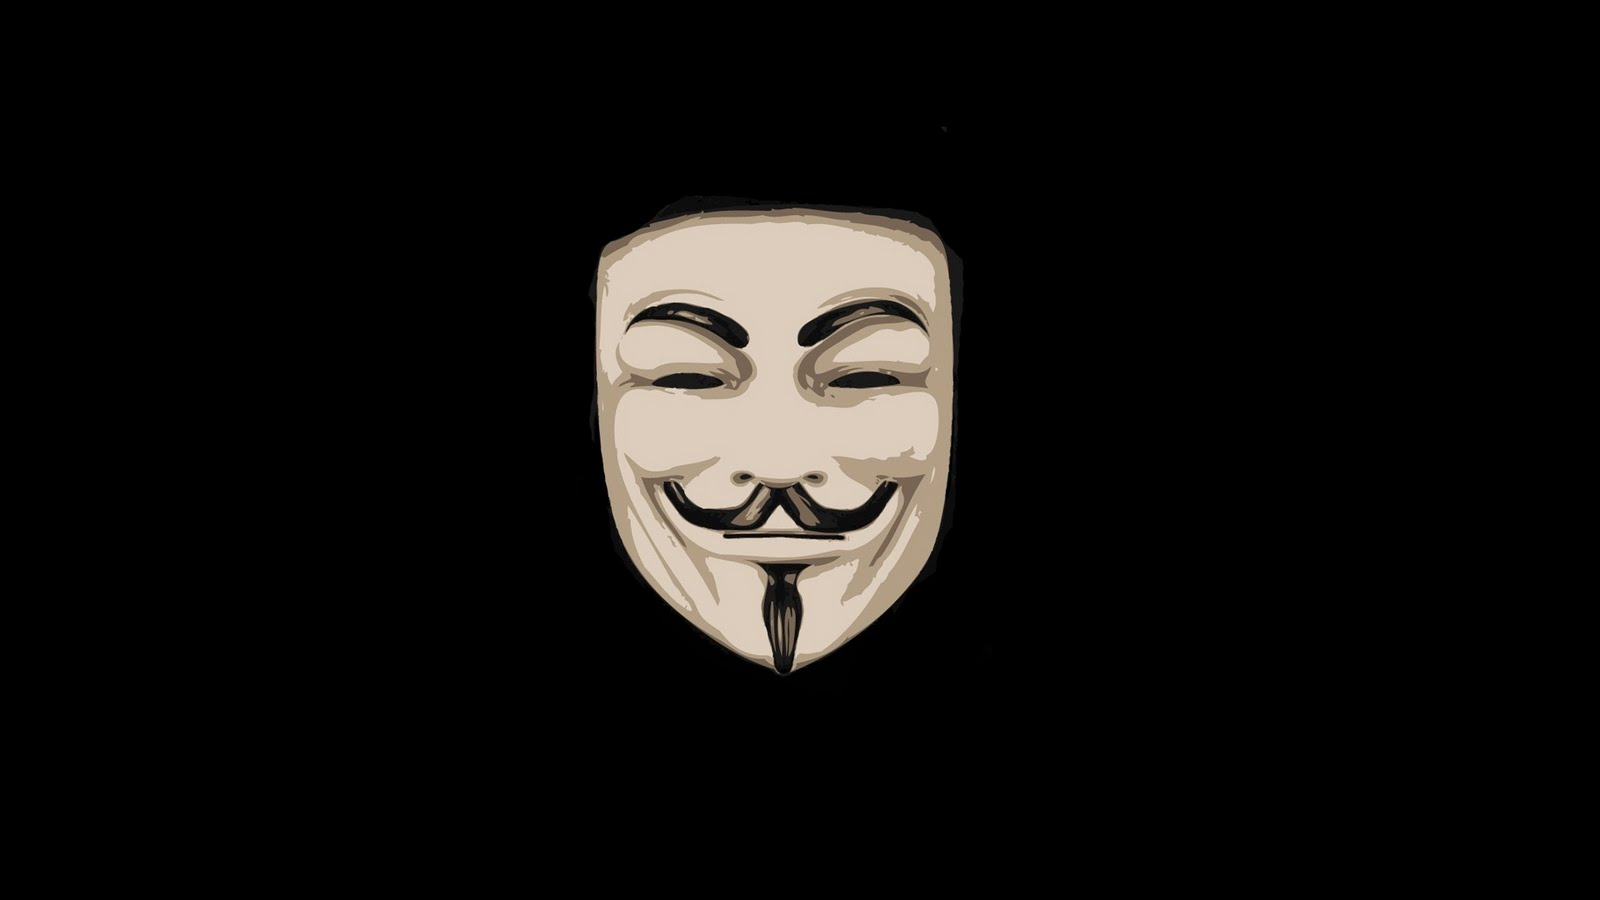 V For Vendetta Mask Wallpaper Central Wallpap...